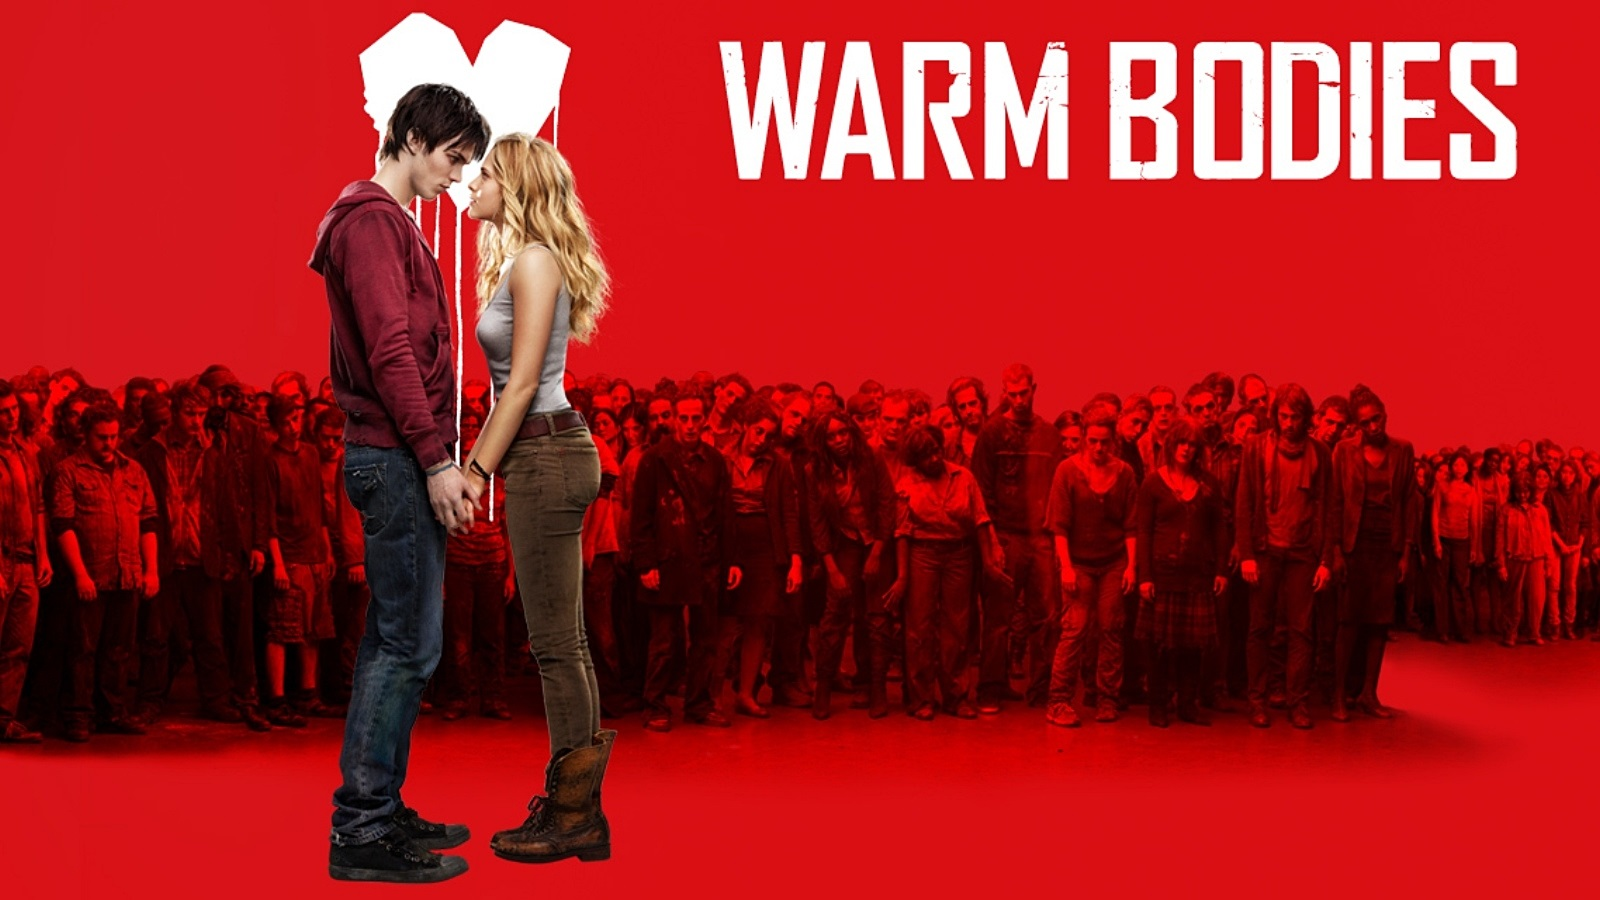 warm bodies movie images warm bodies hd wallpaper and background